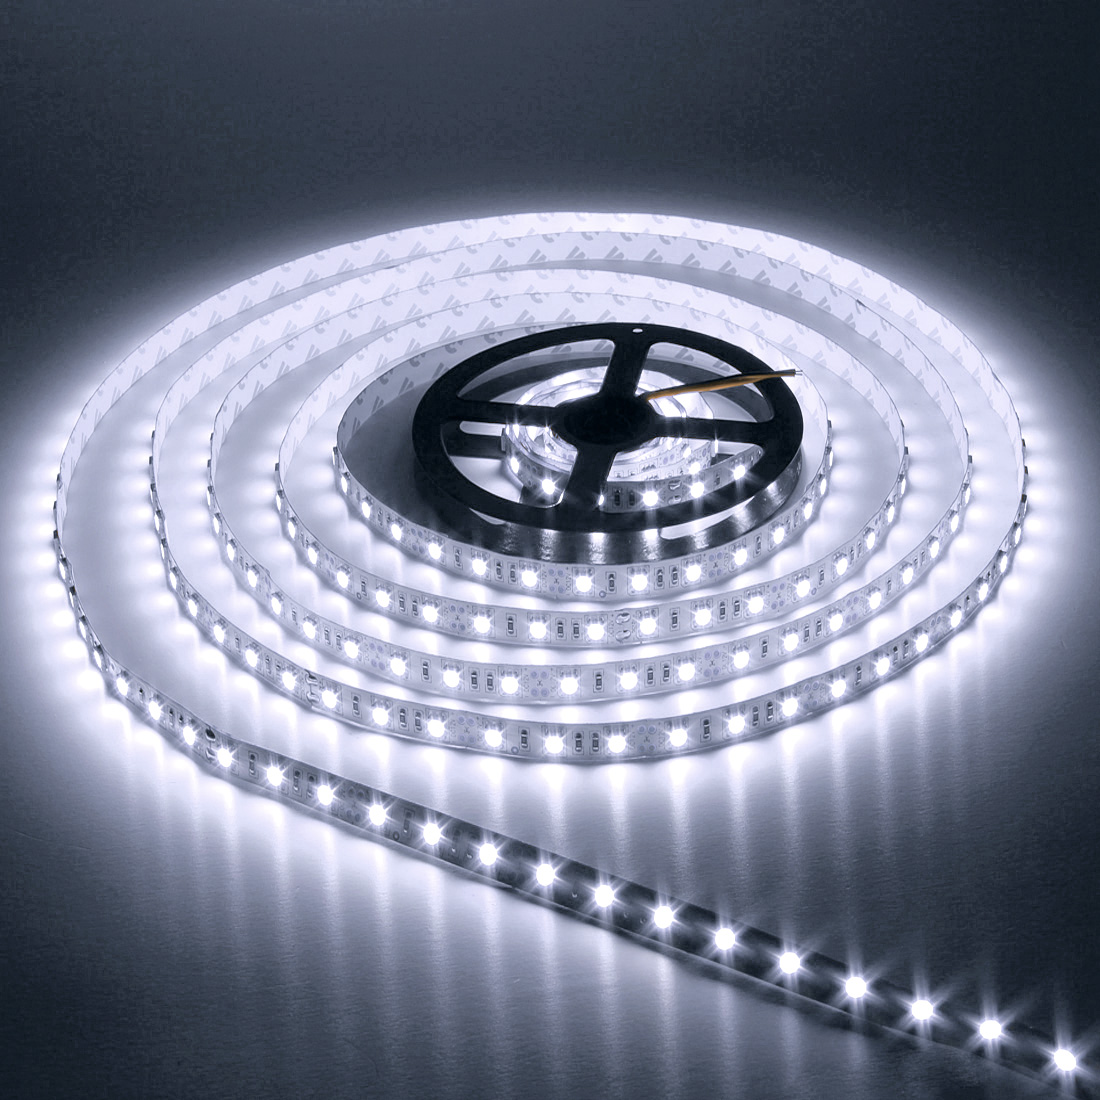 Smuxi 5M 300 LED Strip Flexible Strip Light 5050 SMD Lamp Cool/Warm White Chirstmas 12V No Waterproof LED Light